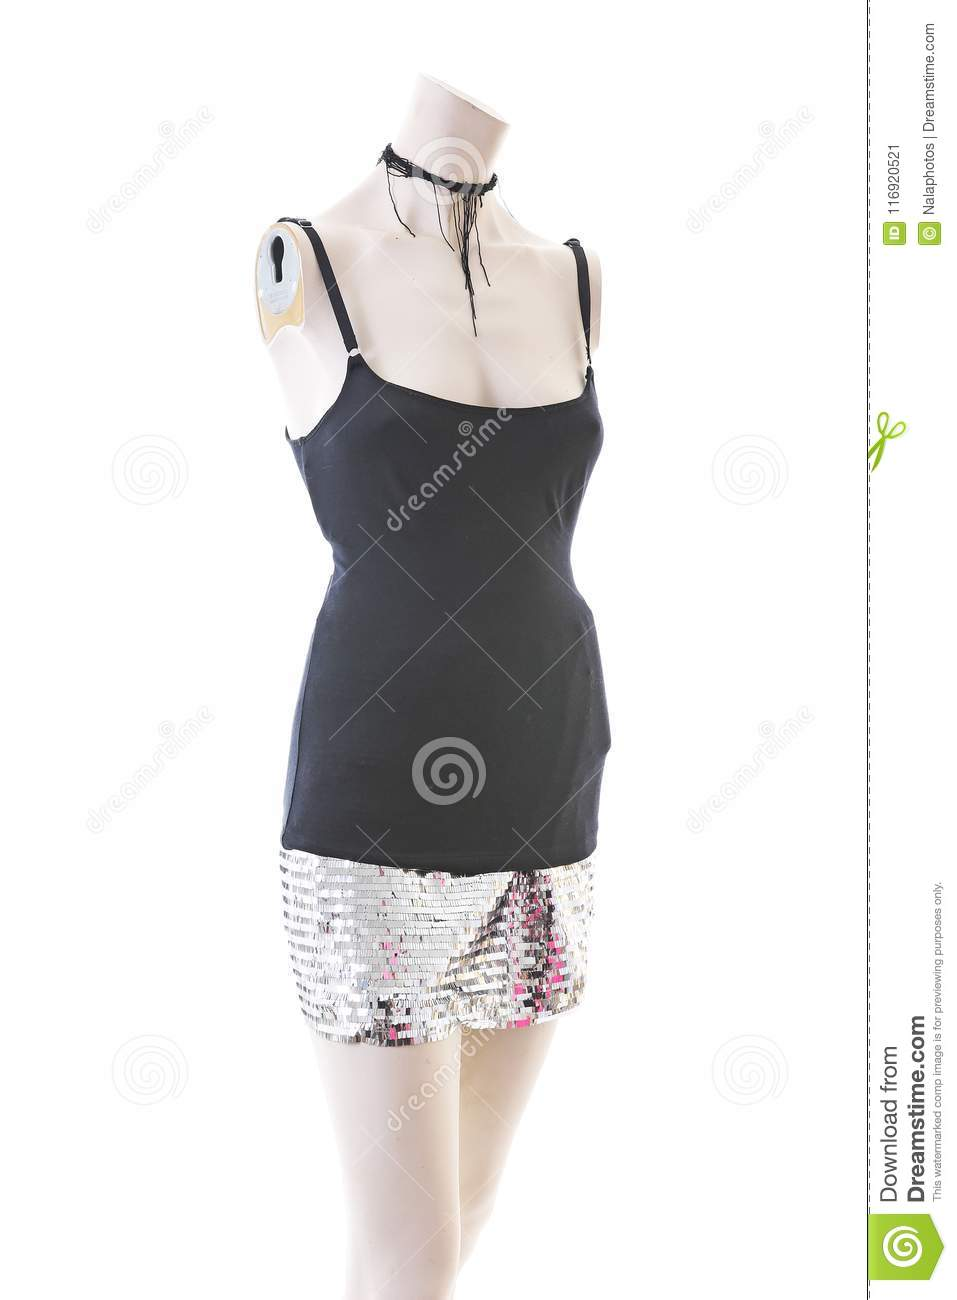 Party top black and silver with mini mirror skirt on mannequin full body shop display. Woman fashion styles, clothes on